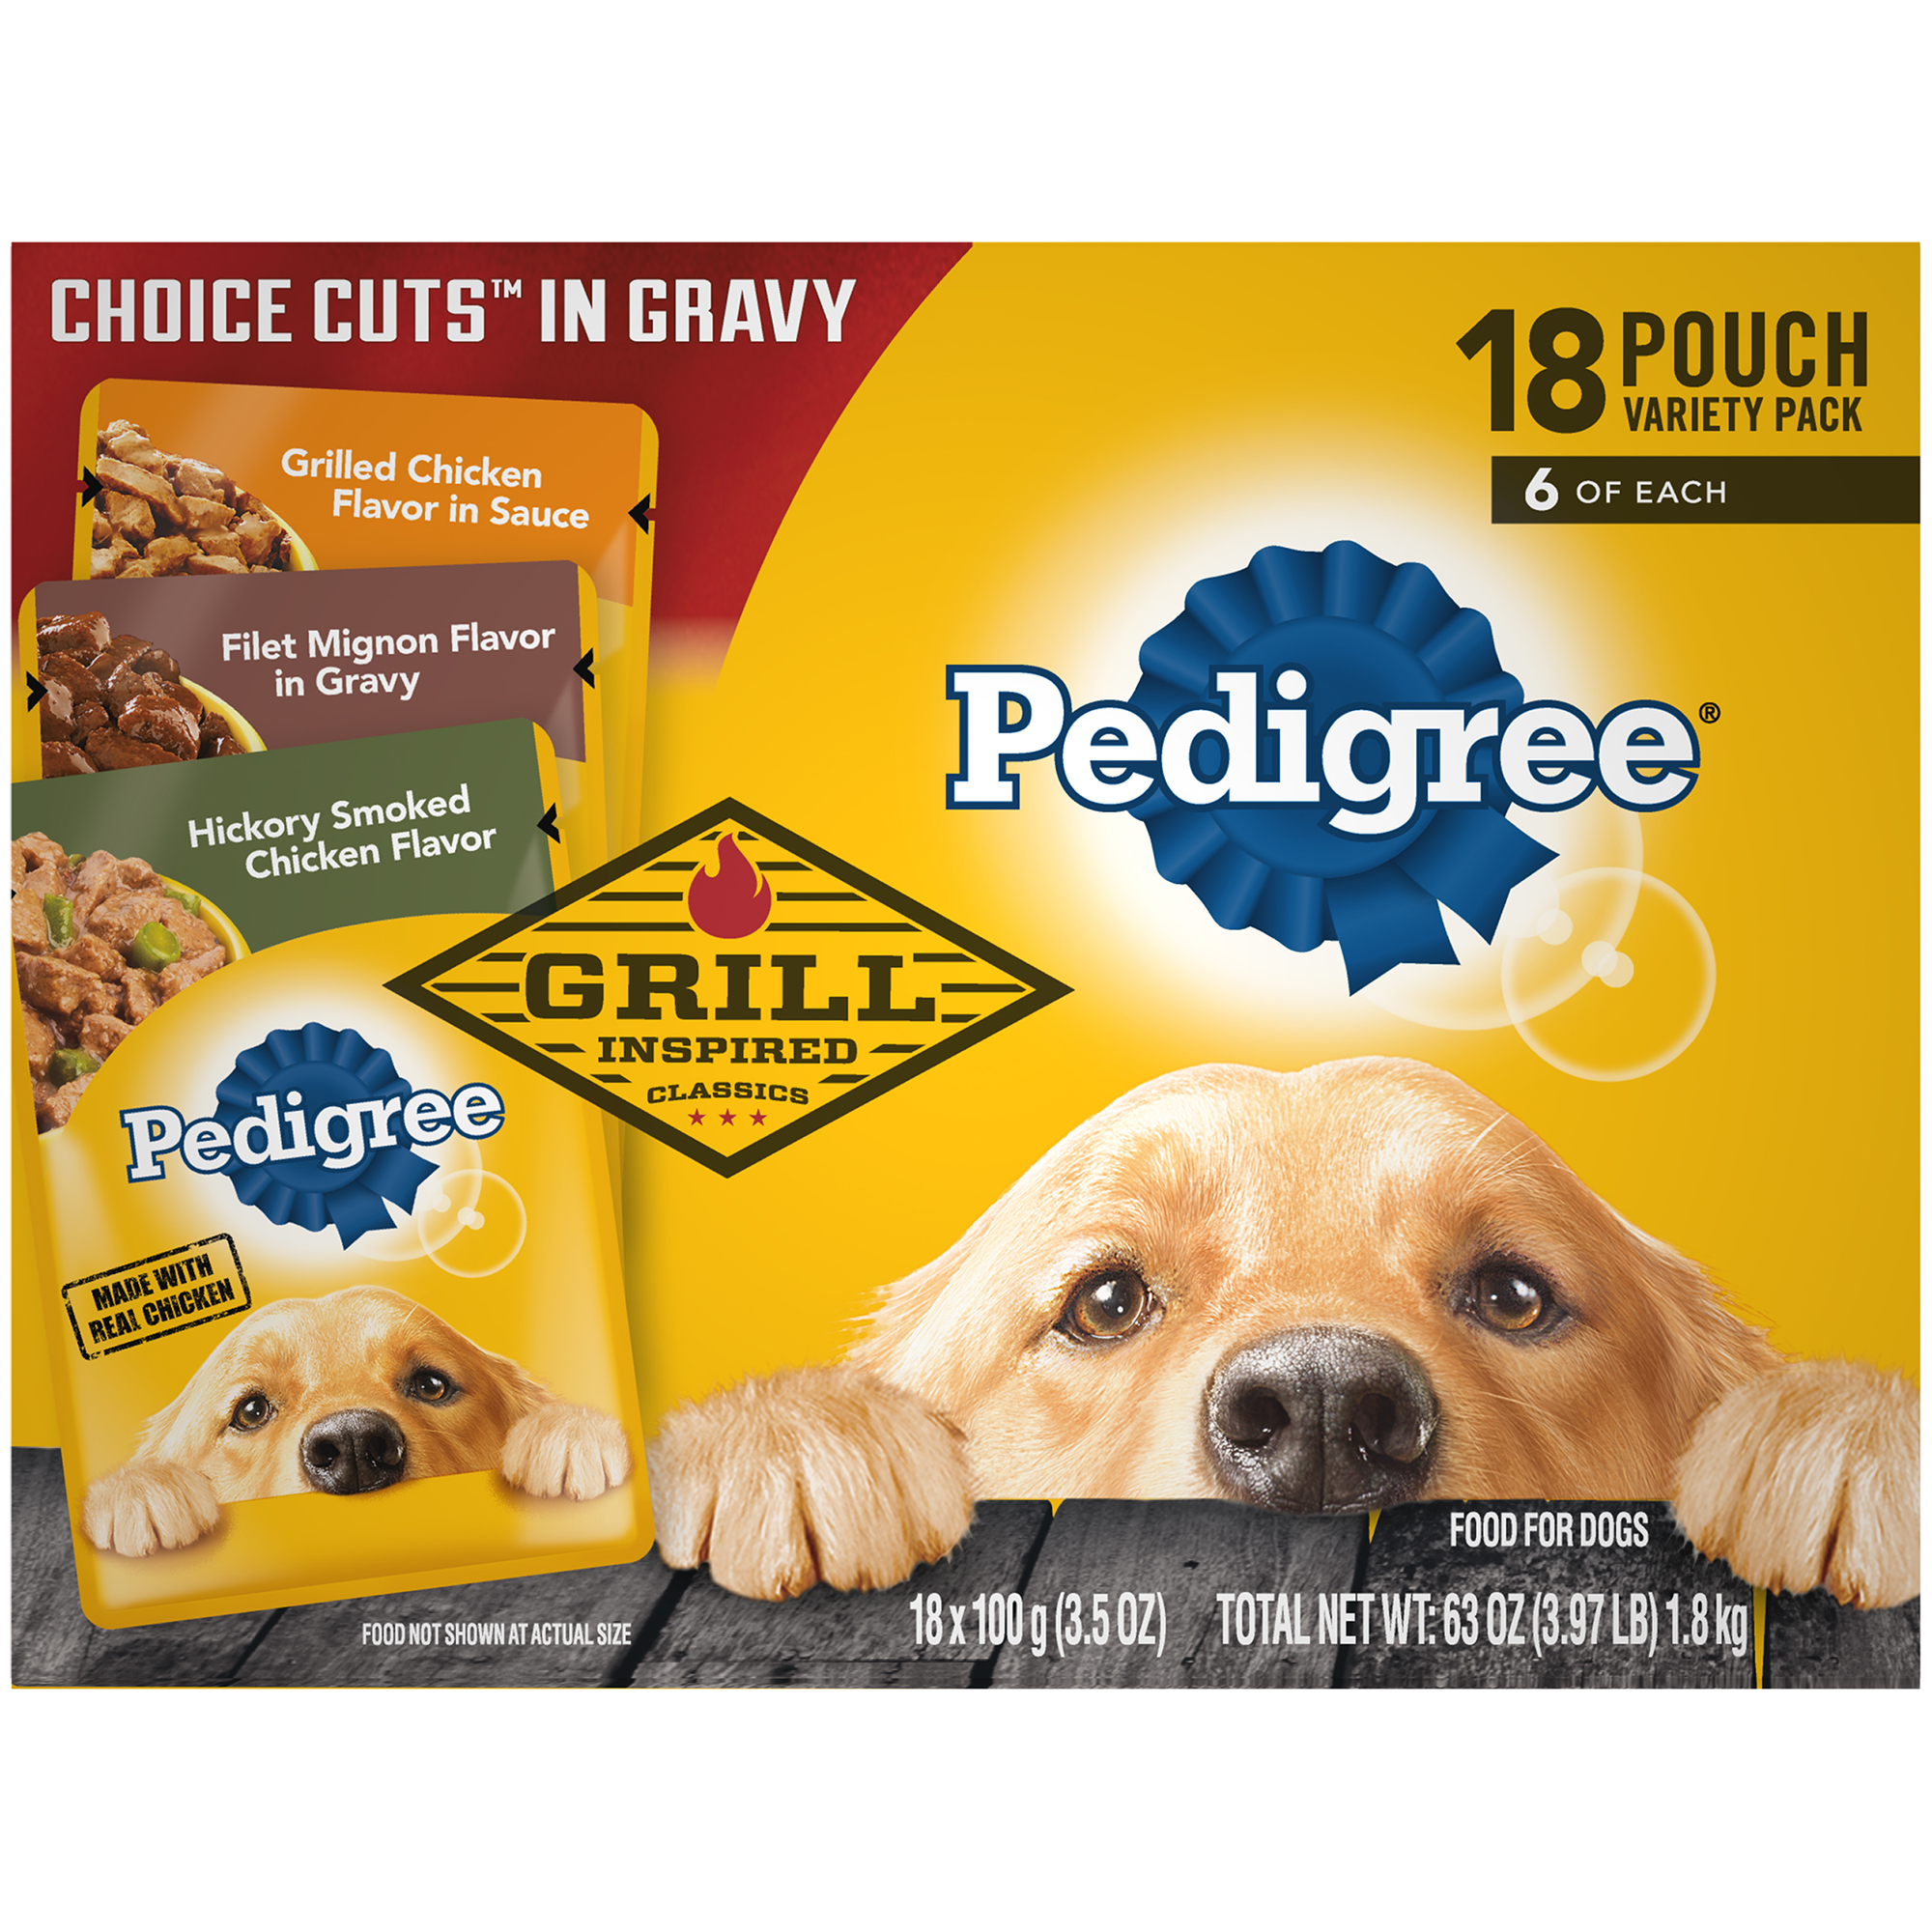 Pedigree Choice Cuts in Gravy Grill Inspired Classics Adult Wet Dog Food Variety Pack, Hickory Smoked Chicken Flavor, Grilled Chicken Flavor, and Filet Mignon Flavor, (18) 3.5 oz. Pouches